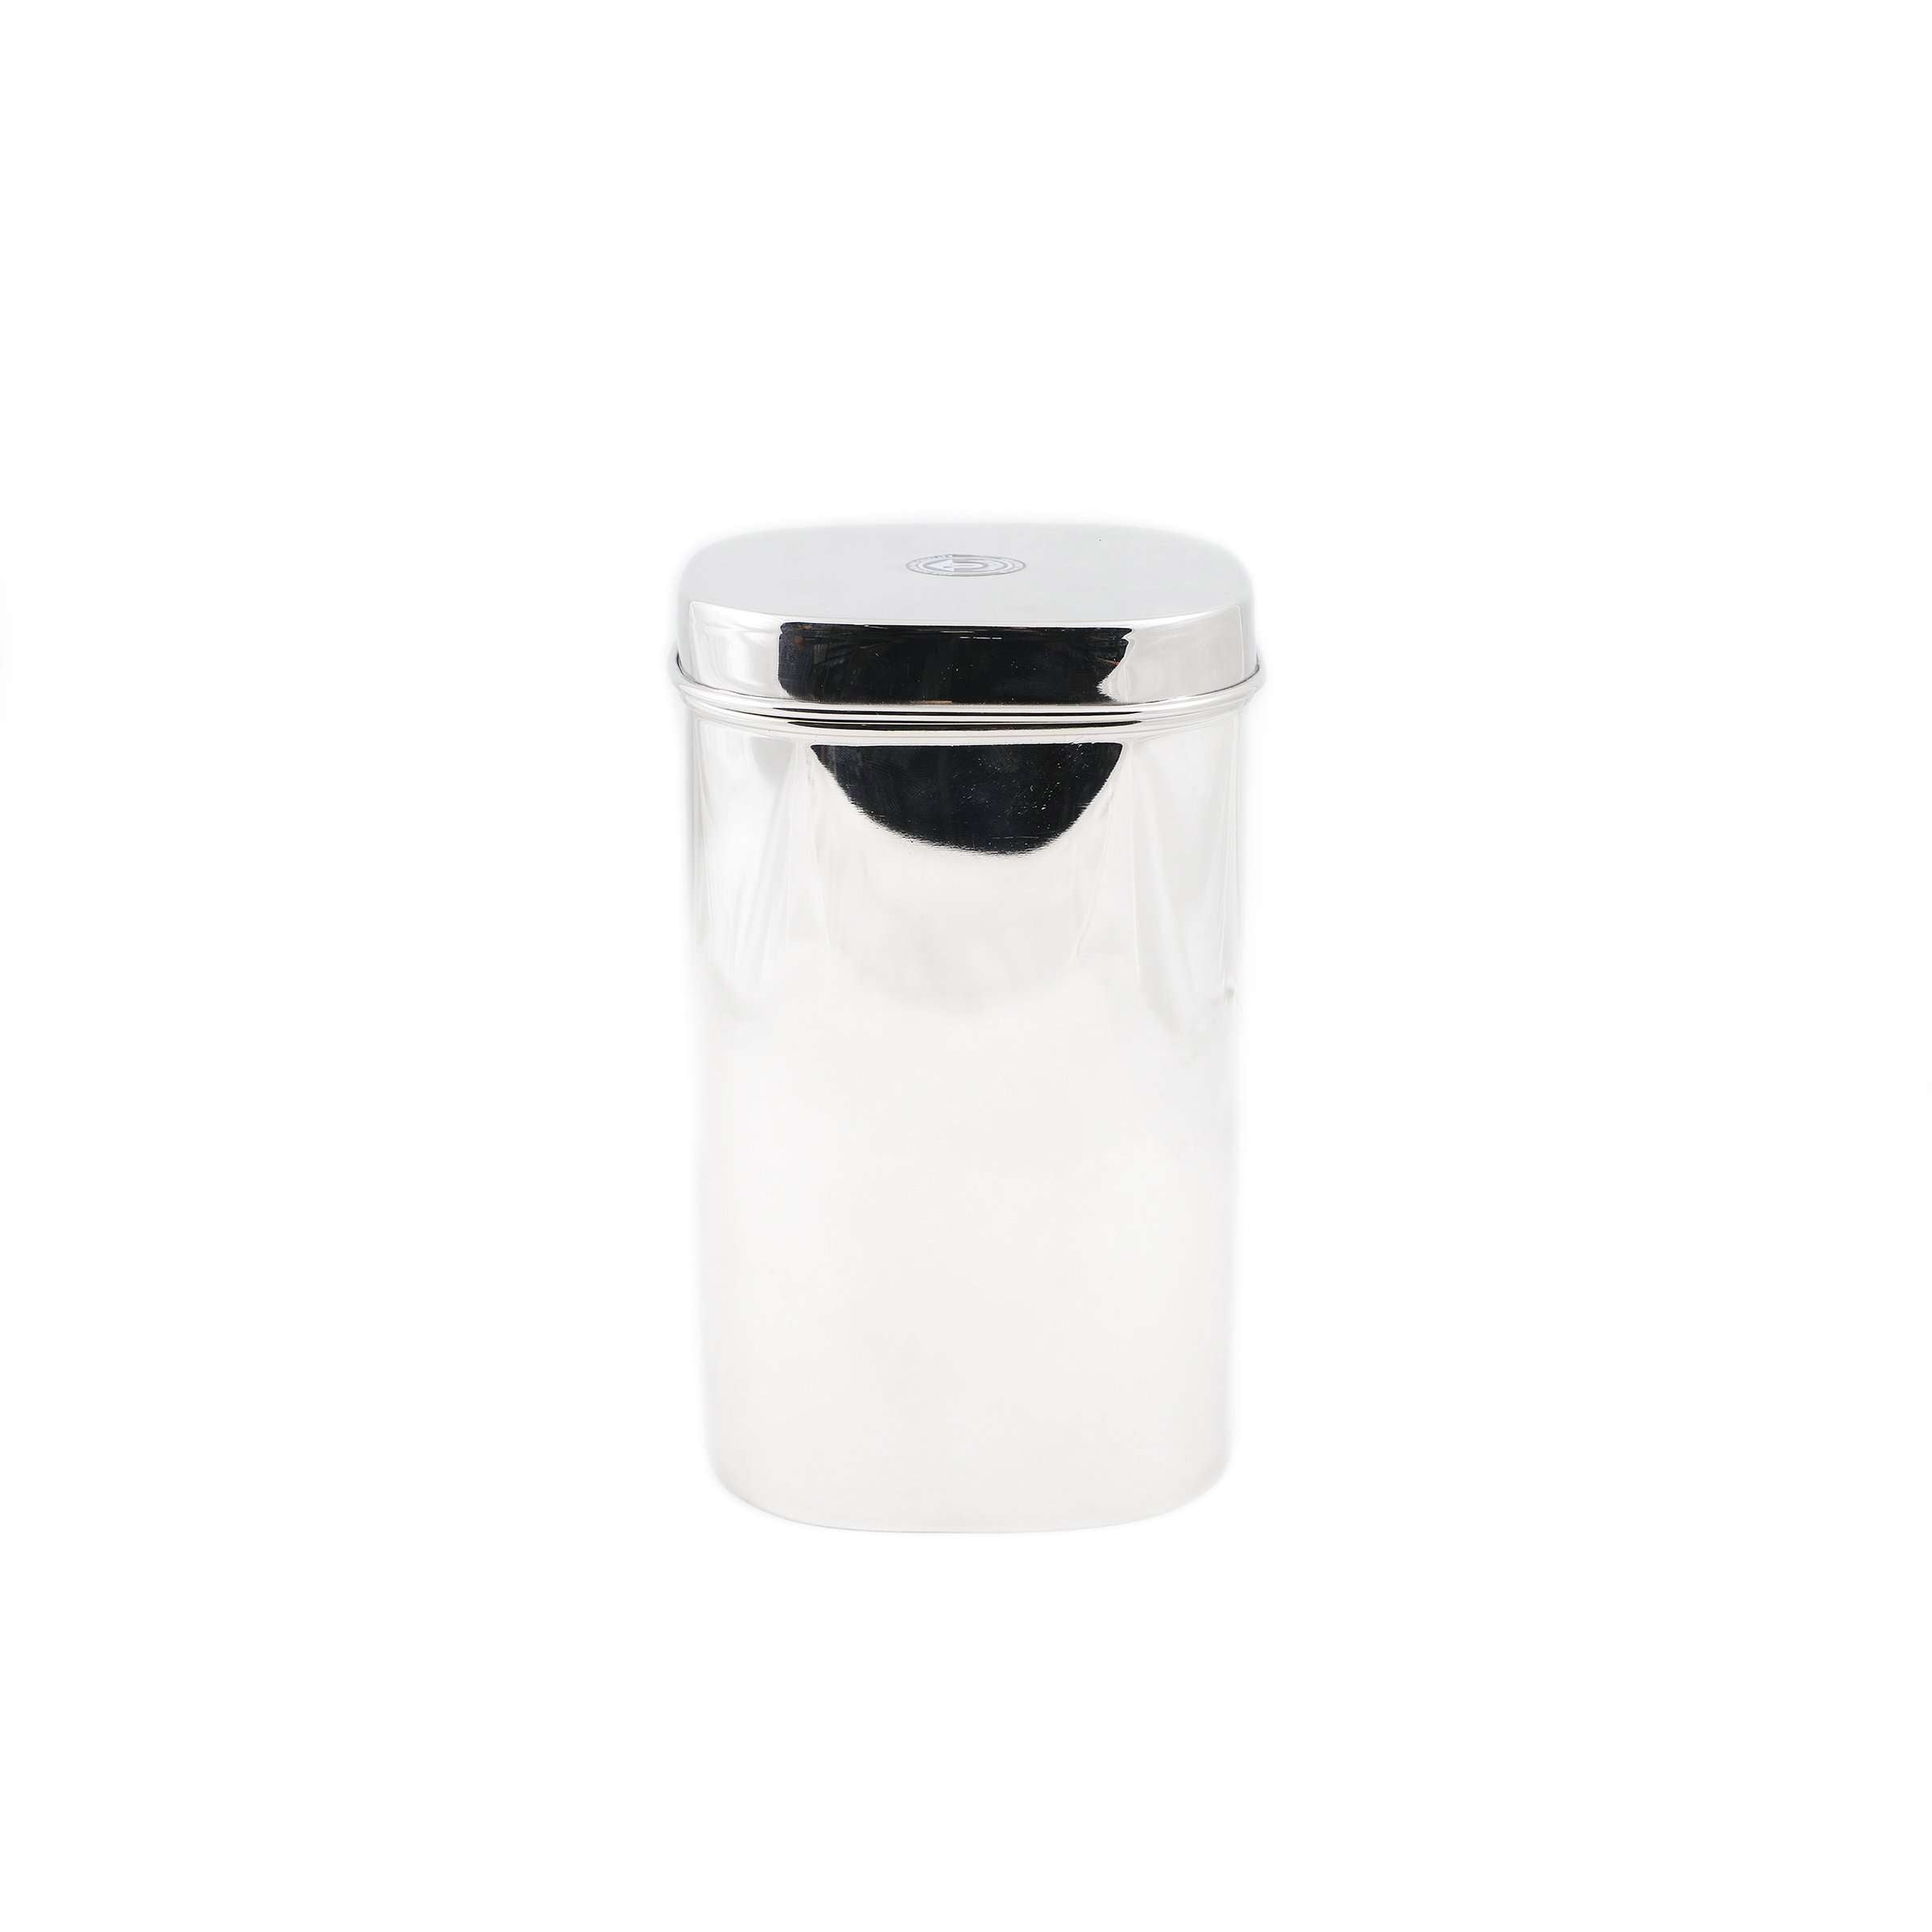 Stainless Steel Kitchen Storage Square Canister, No. 3